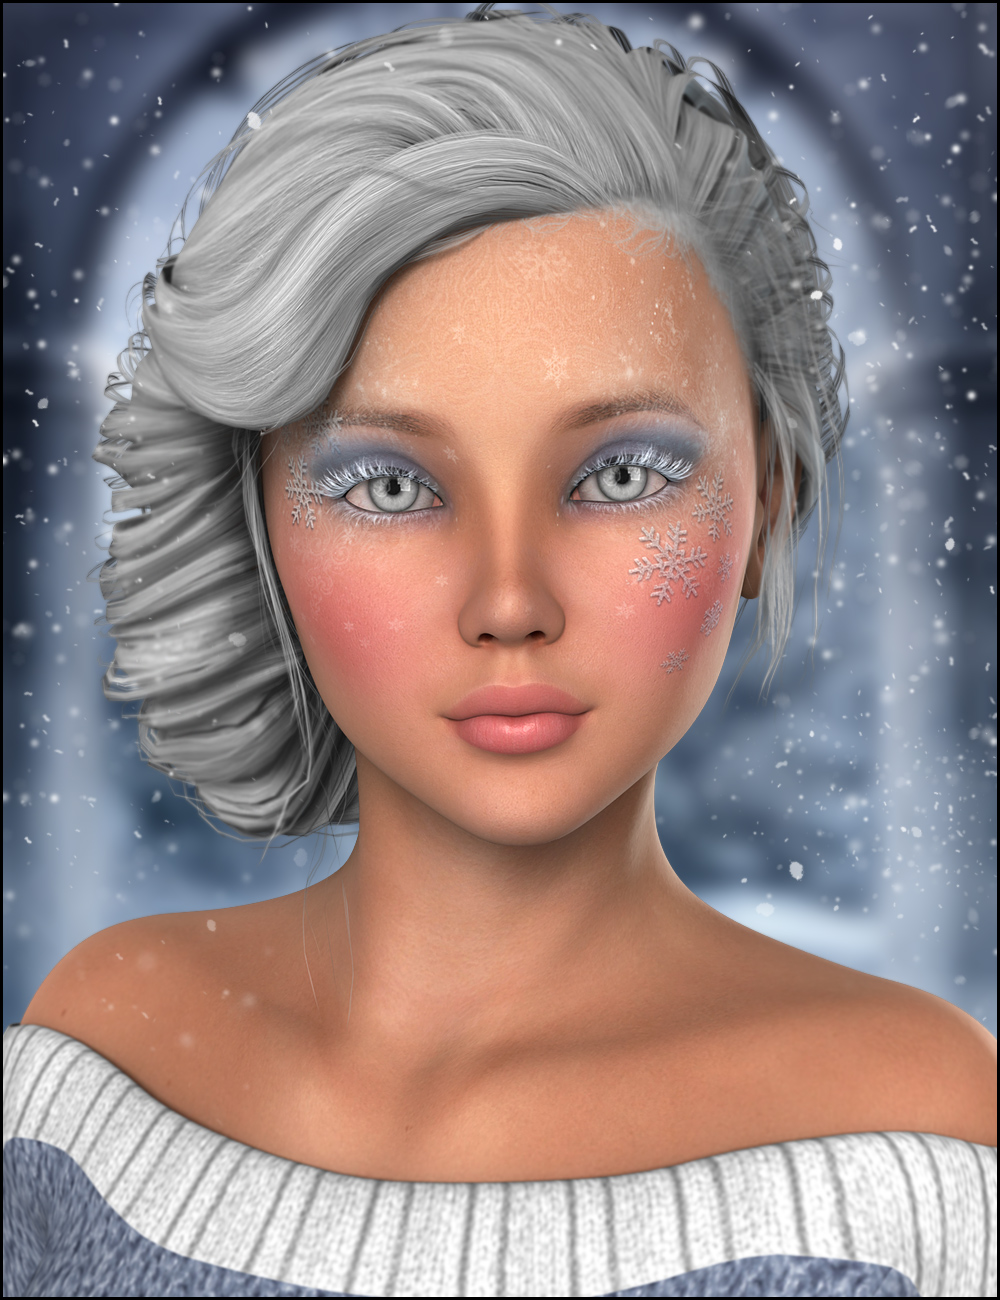 December for Belle 6 by: JessaiiRaziel, 3D Models by Daz 3D